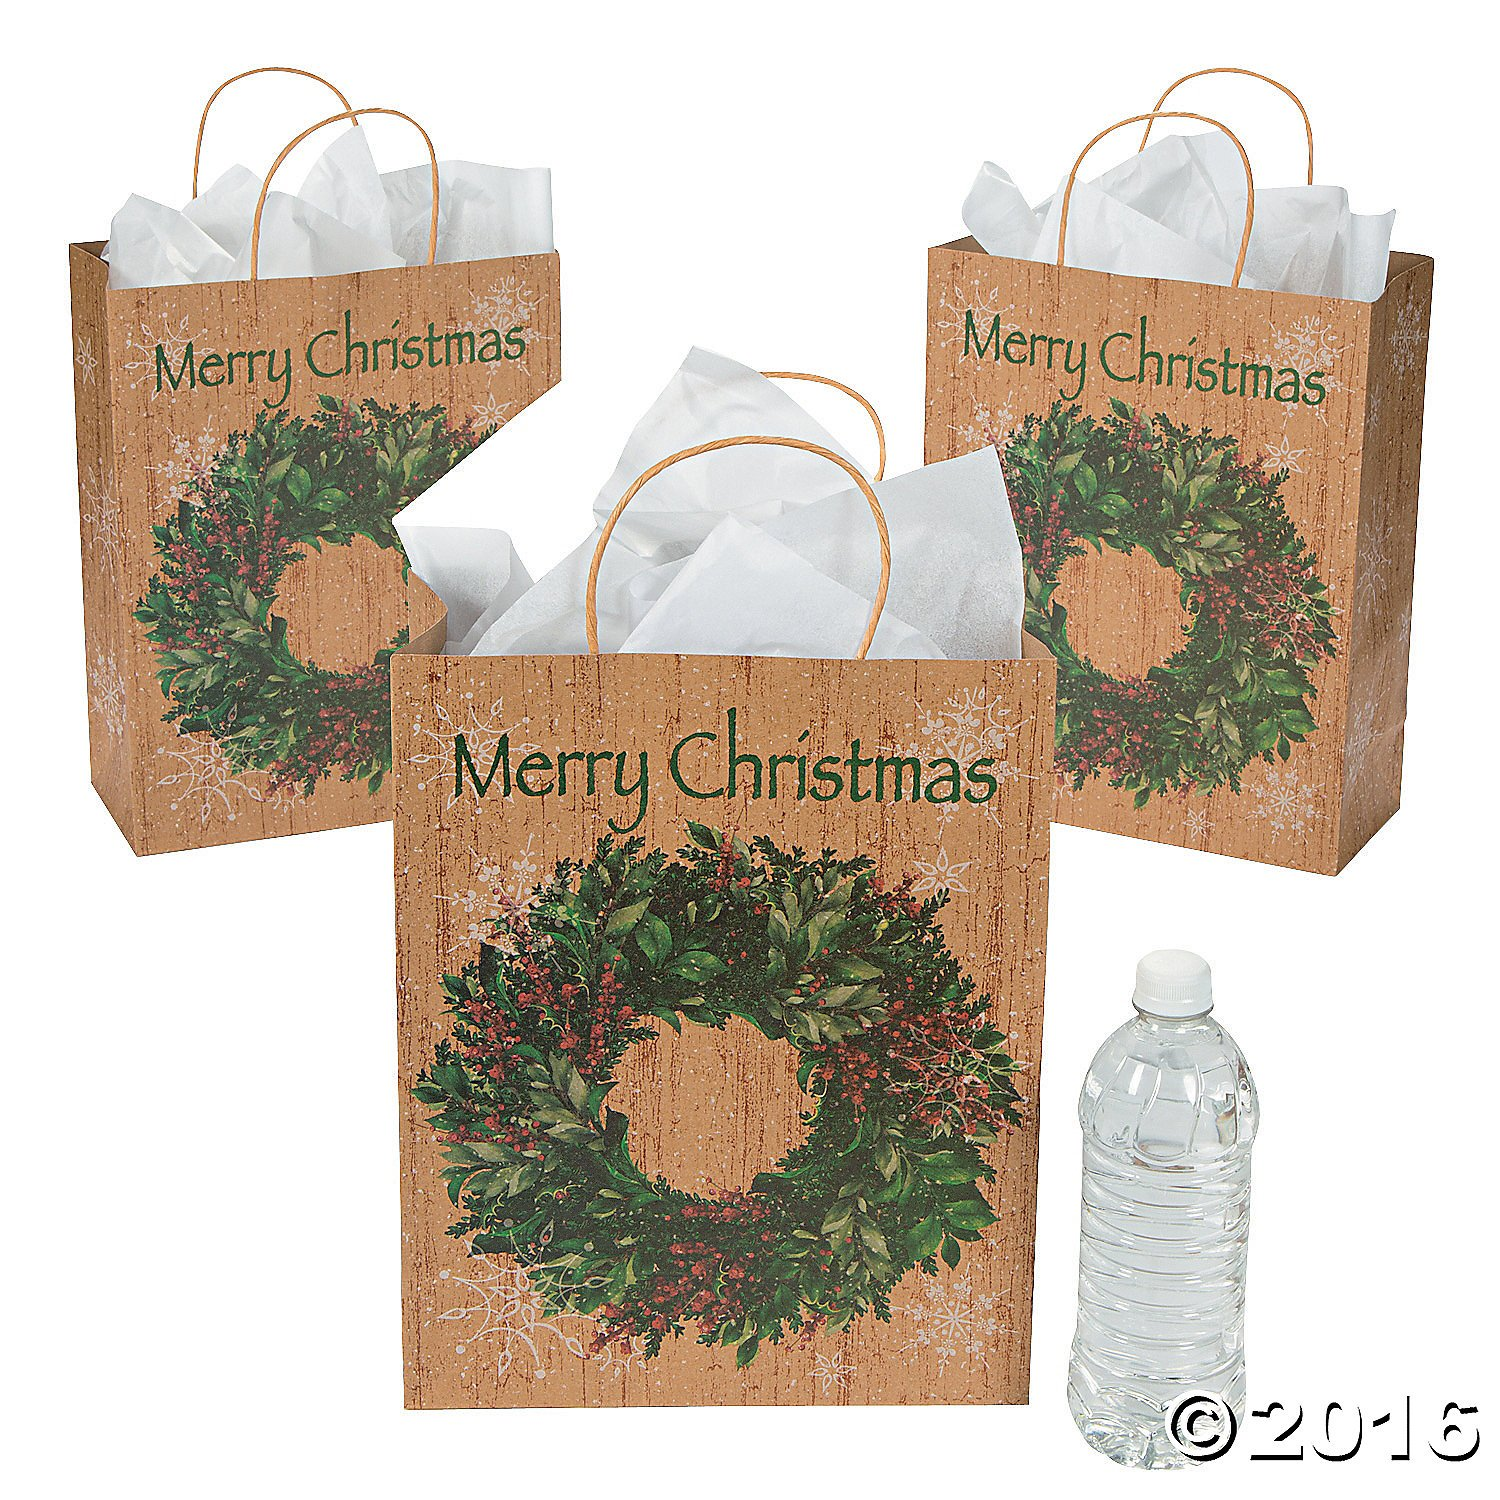 Amazon large holiday wreath kraft gift bags 12 pack 10 x 4 amazon large holiday wreath kraft gift bags 12 pack 10 x 4 12 x 12 34 with 3 12 handles paper health personal care jeuxipadfo Choice Image